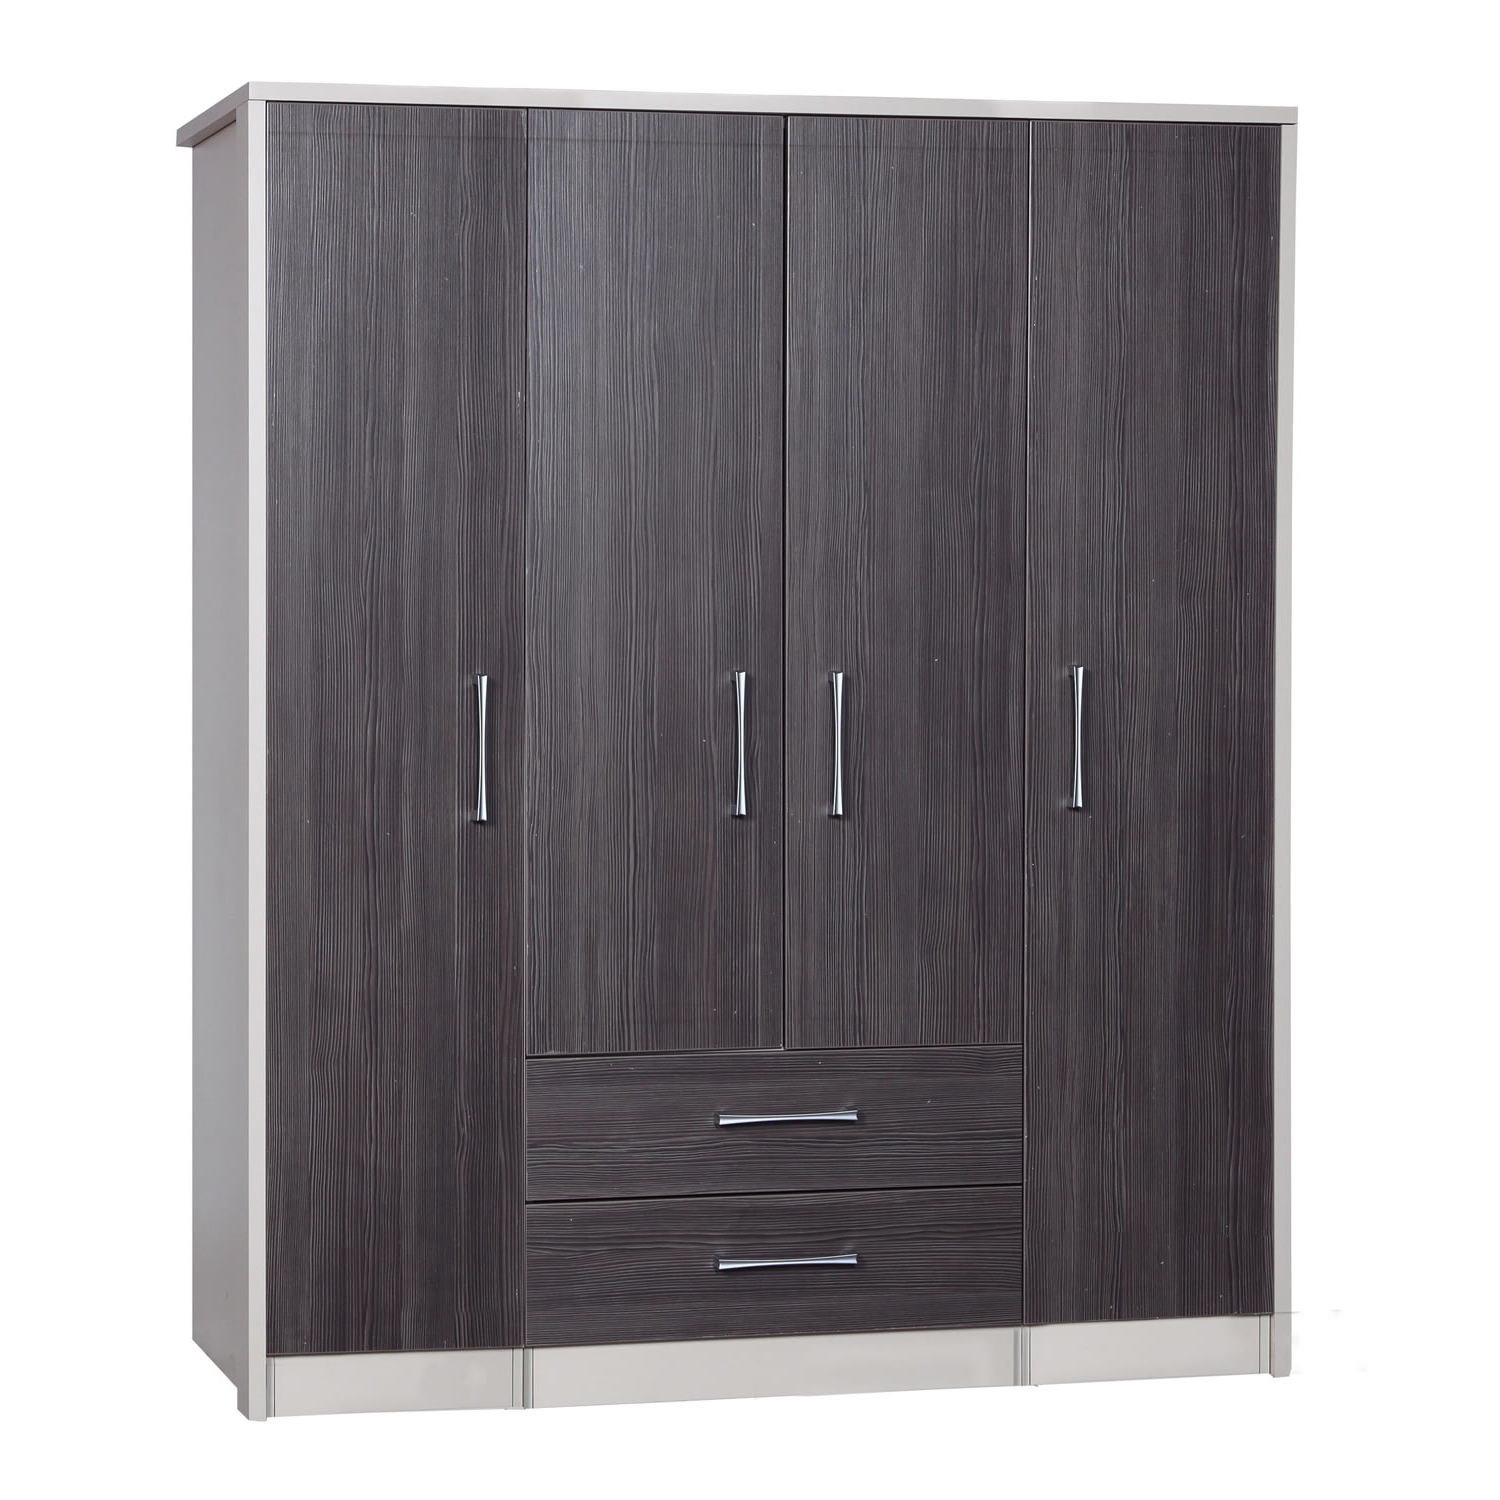 Favorite Avola Grey Large Combi Wardrobe – Next Day Delivery Avola Grey For Grey Wardrobes (View 2 of 15)